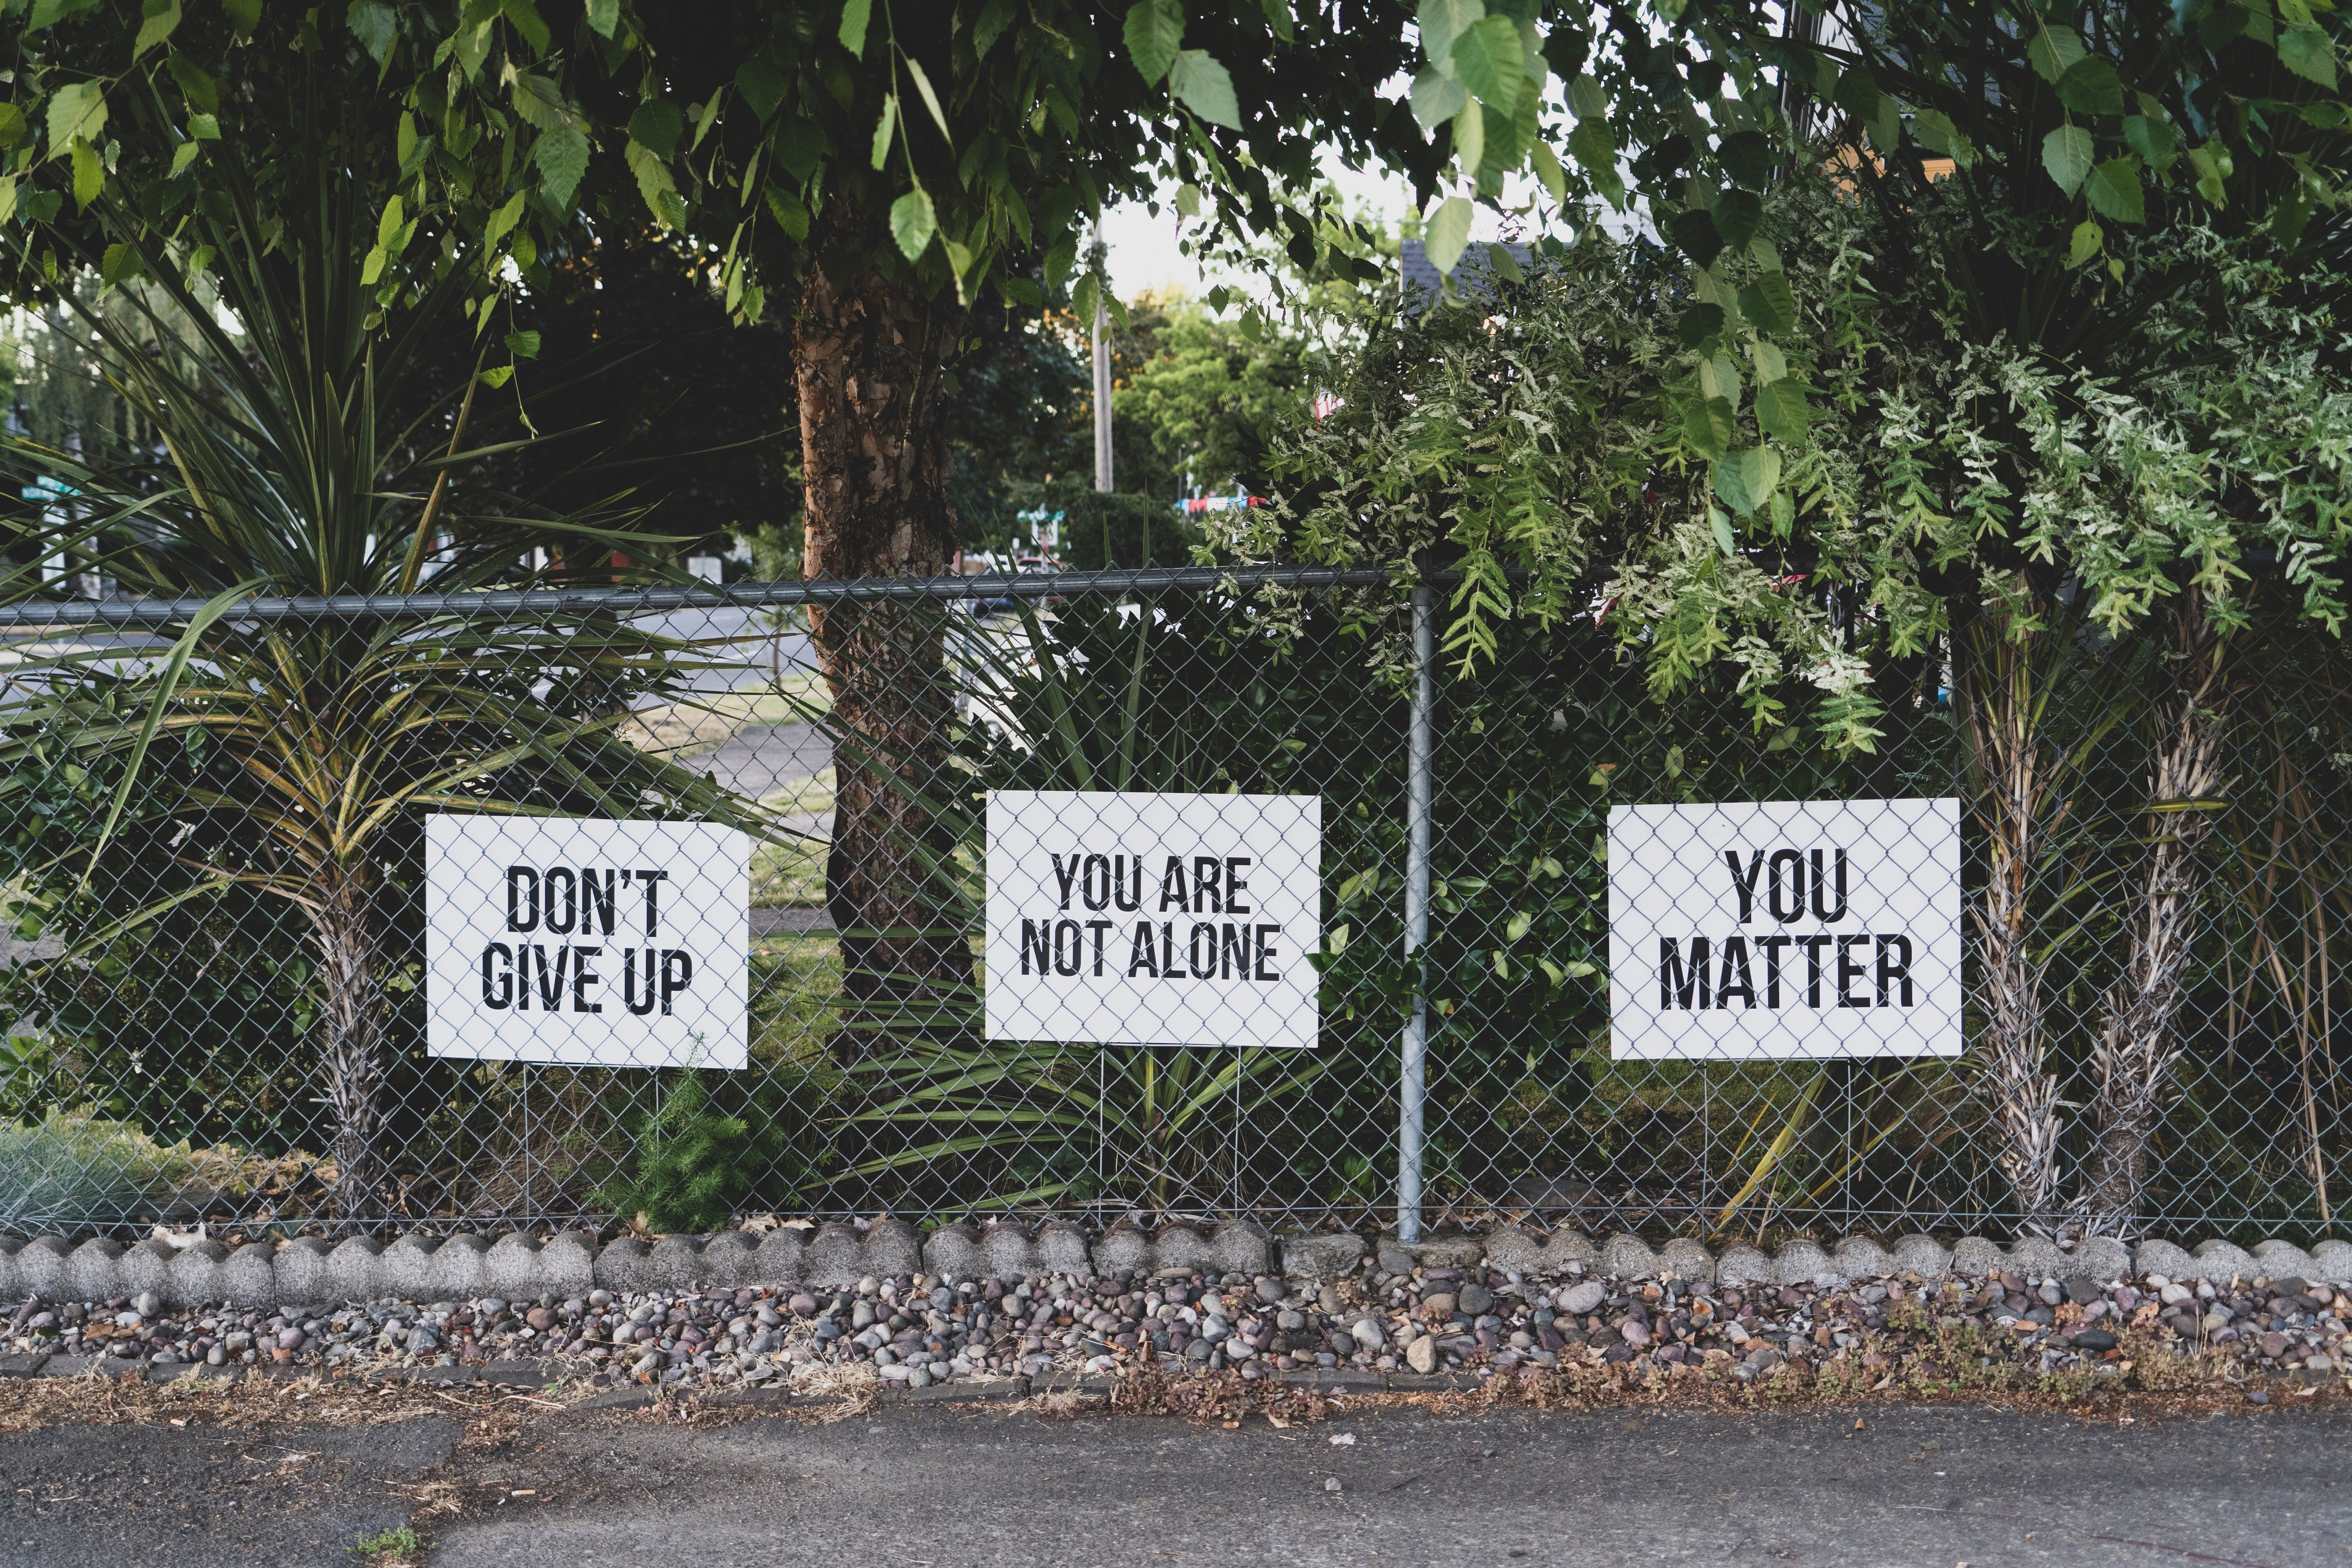 """Don't give up. You are not alone. You matter"" signage on metal fence; image by Dan Meyers, via Unsplash.com."